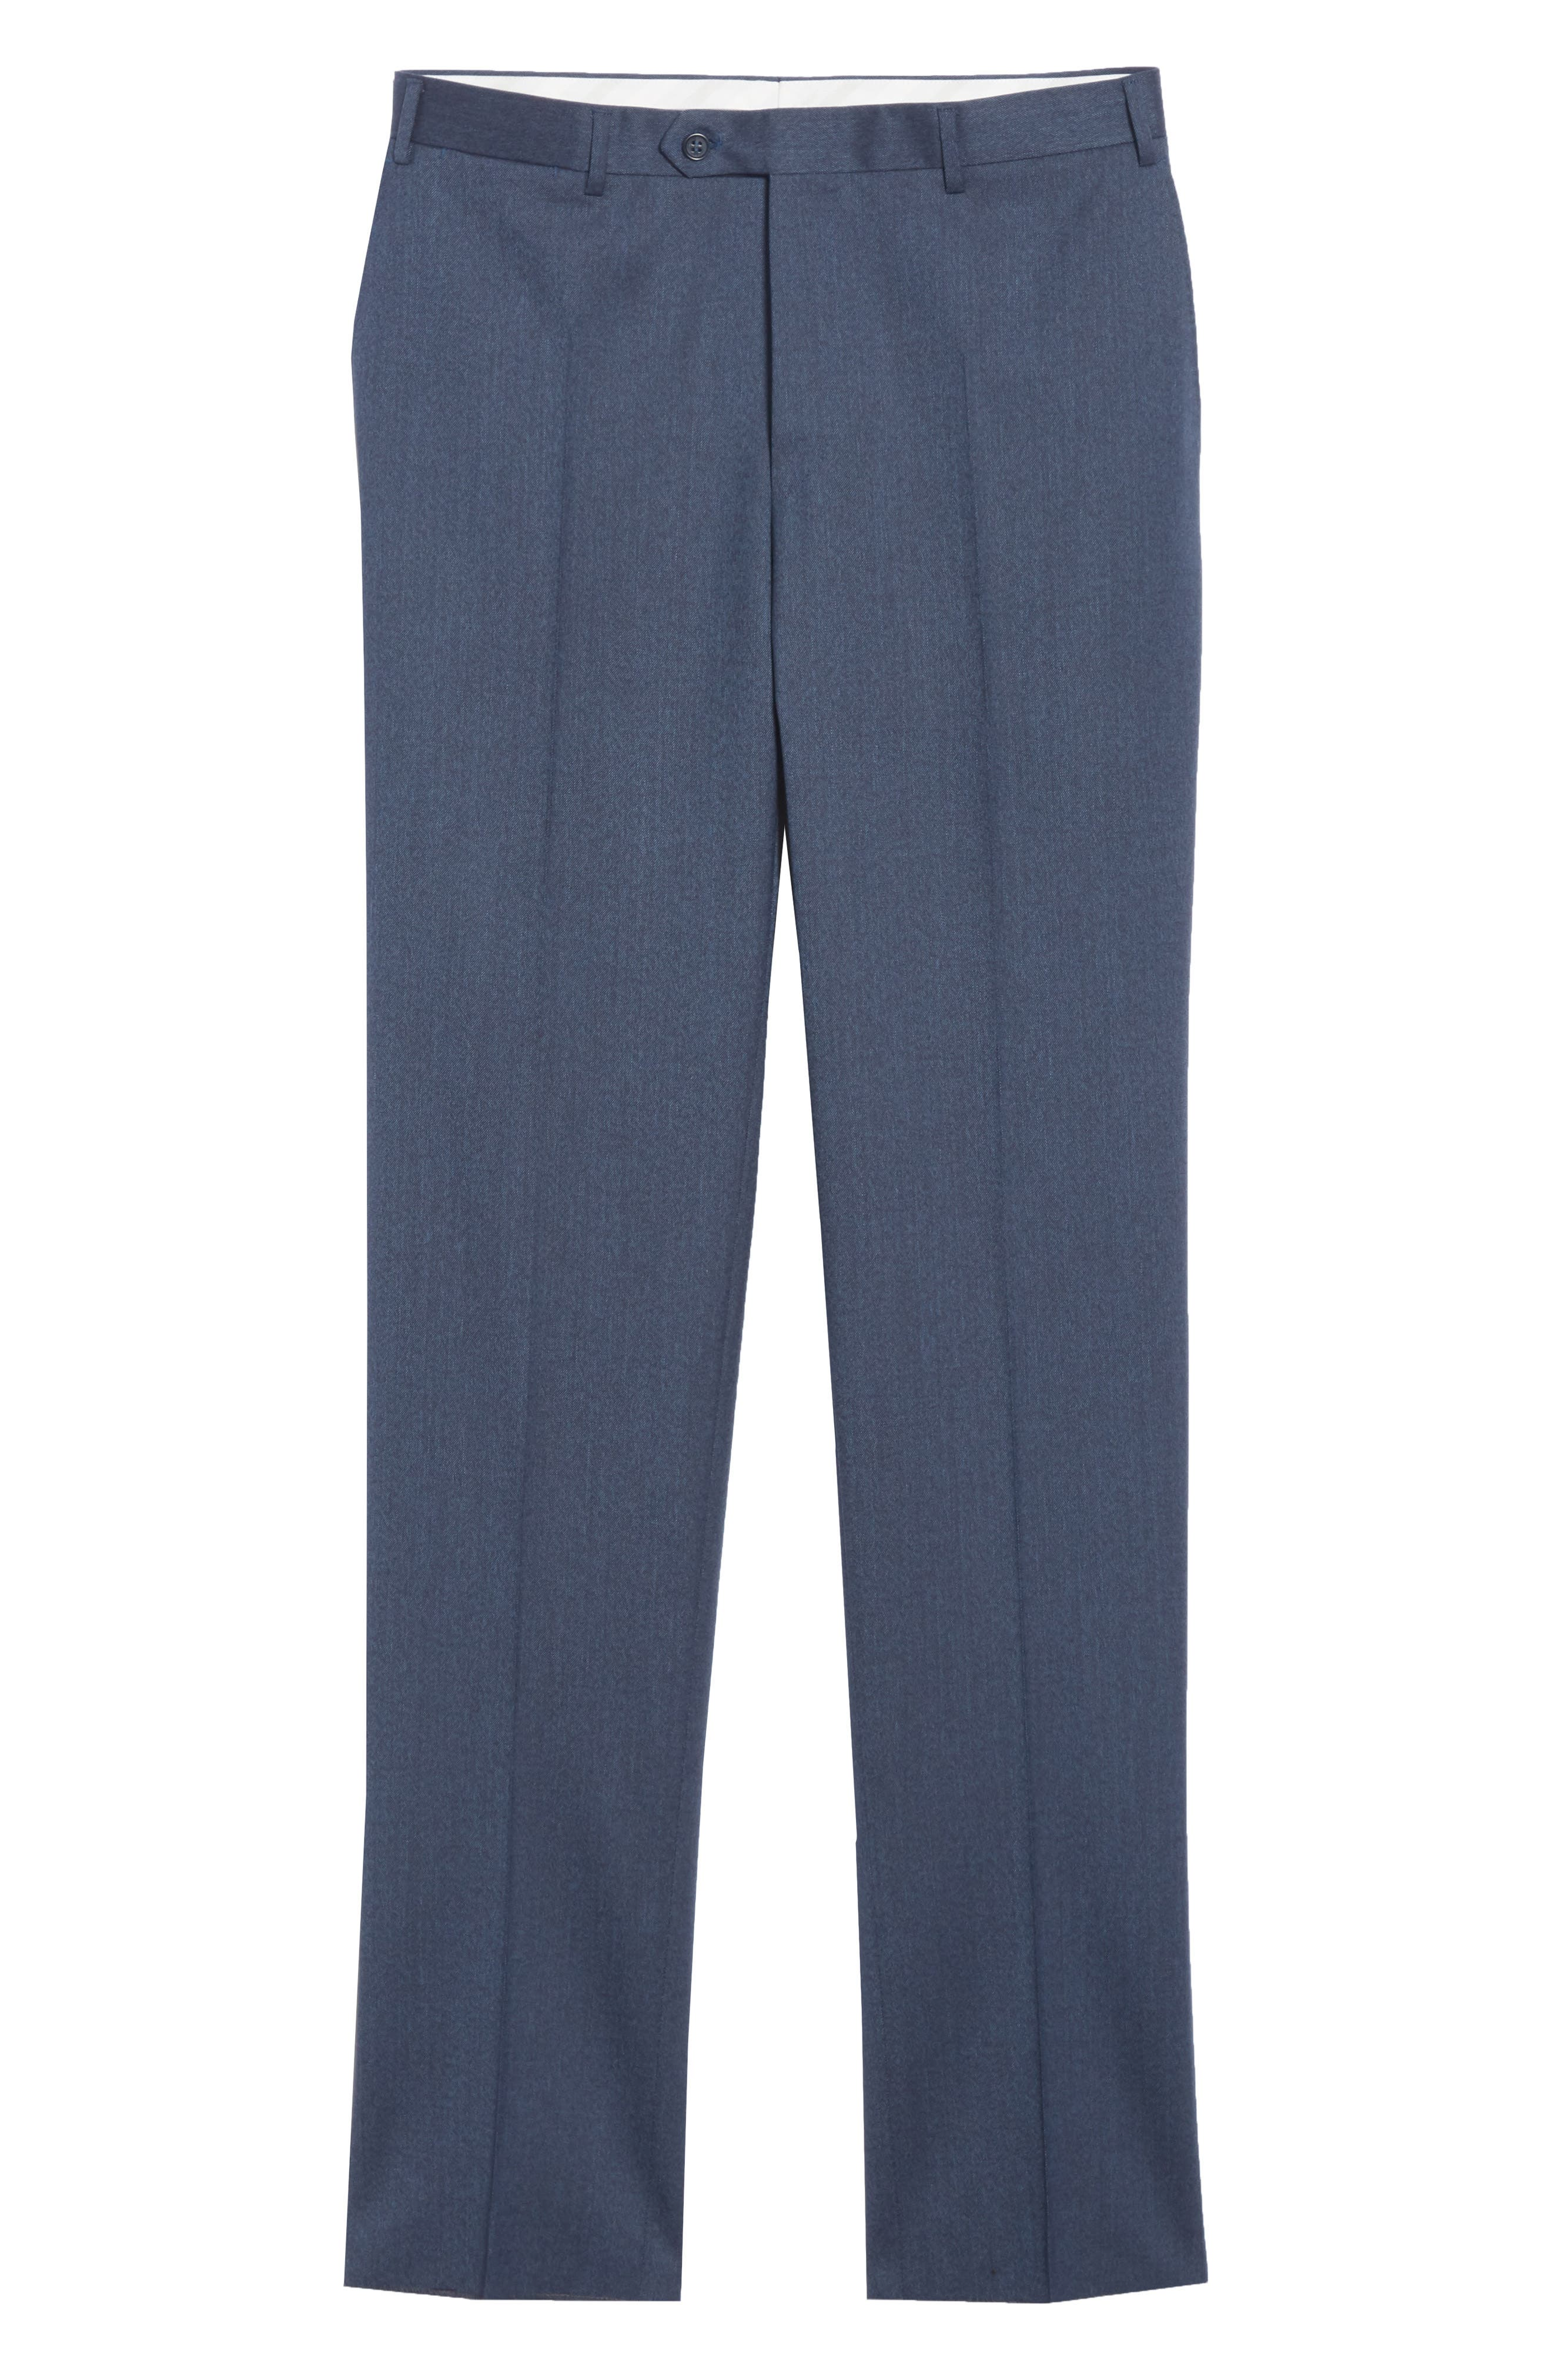 Cavaltry Flat Front Solid Stretch Wool Trousers,                             Alternate thumbnail 6, color,                             DARK BLUE